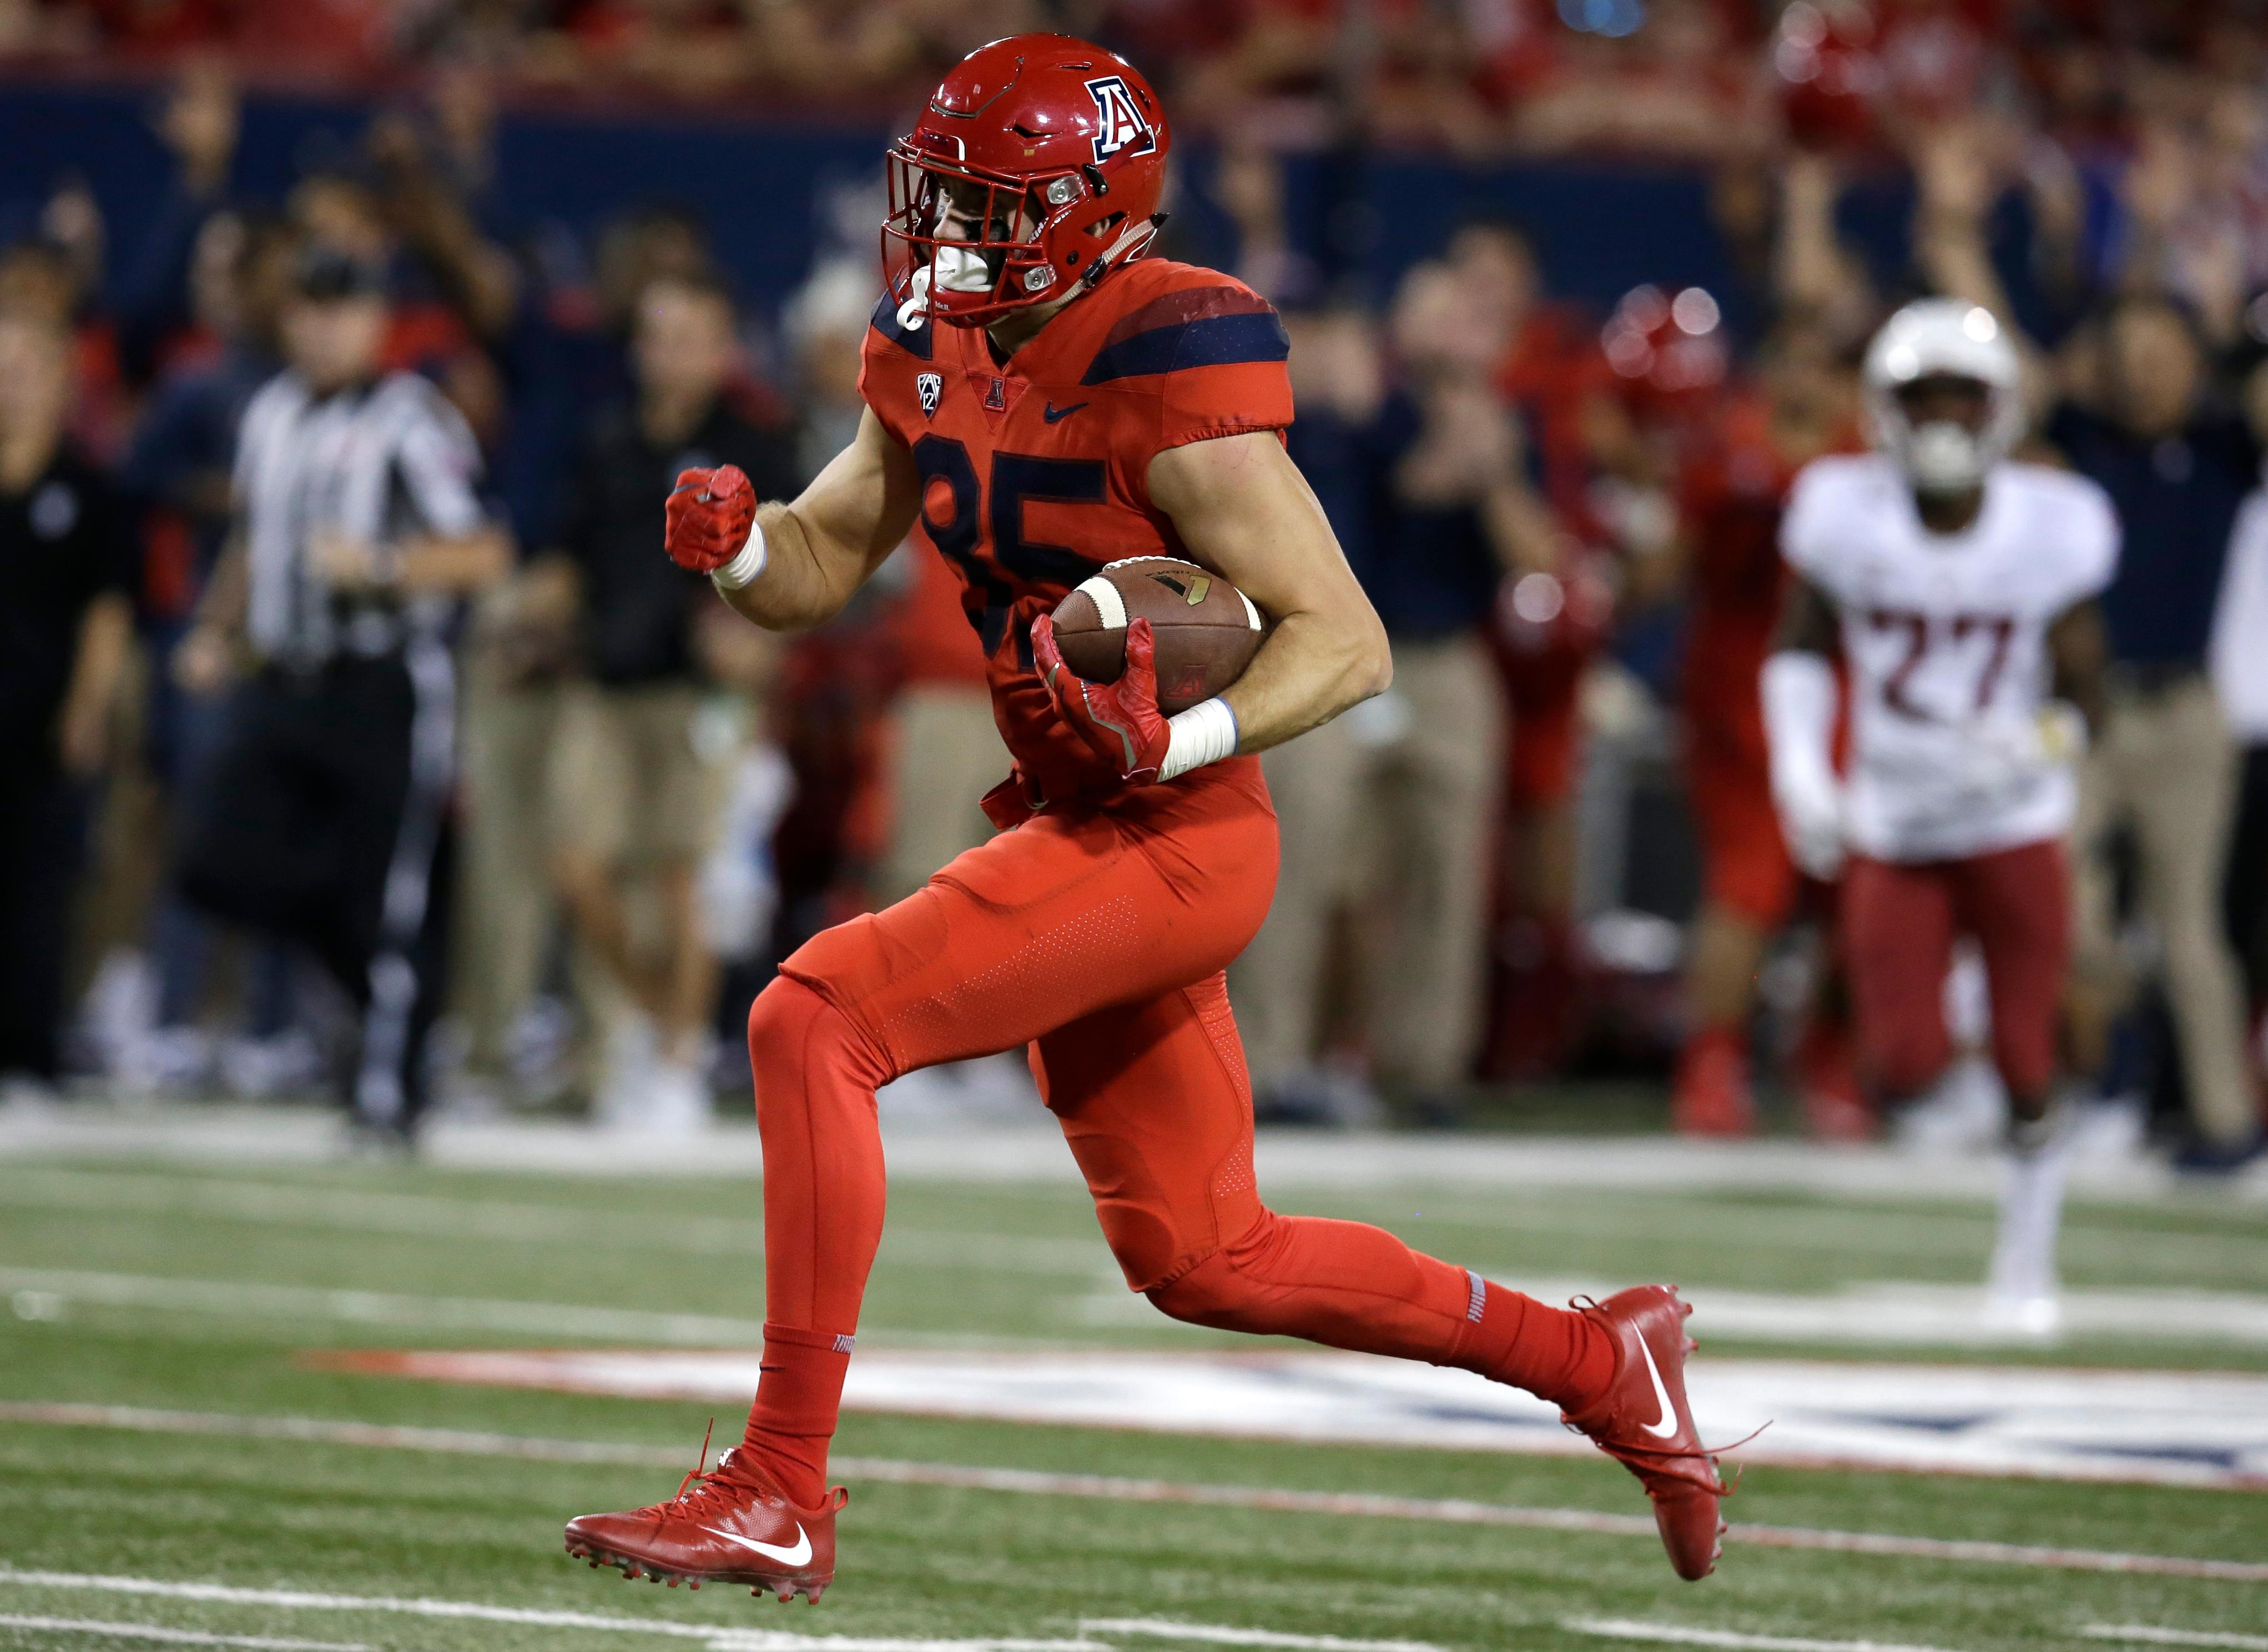 Arizona tight end Jamie Nunley scores a touchdown in the first half during an NCAA college football game against Washington State, Saturday, Oct. 28, 2017, in Tucson, Ariz. (AP Photo/Rick Scuteri)